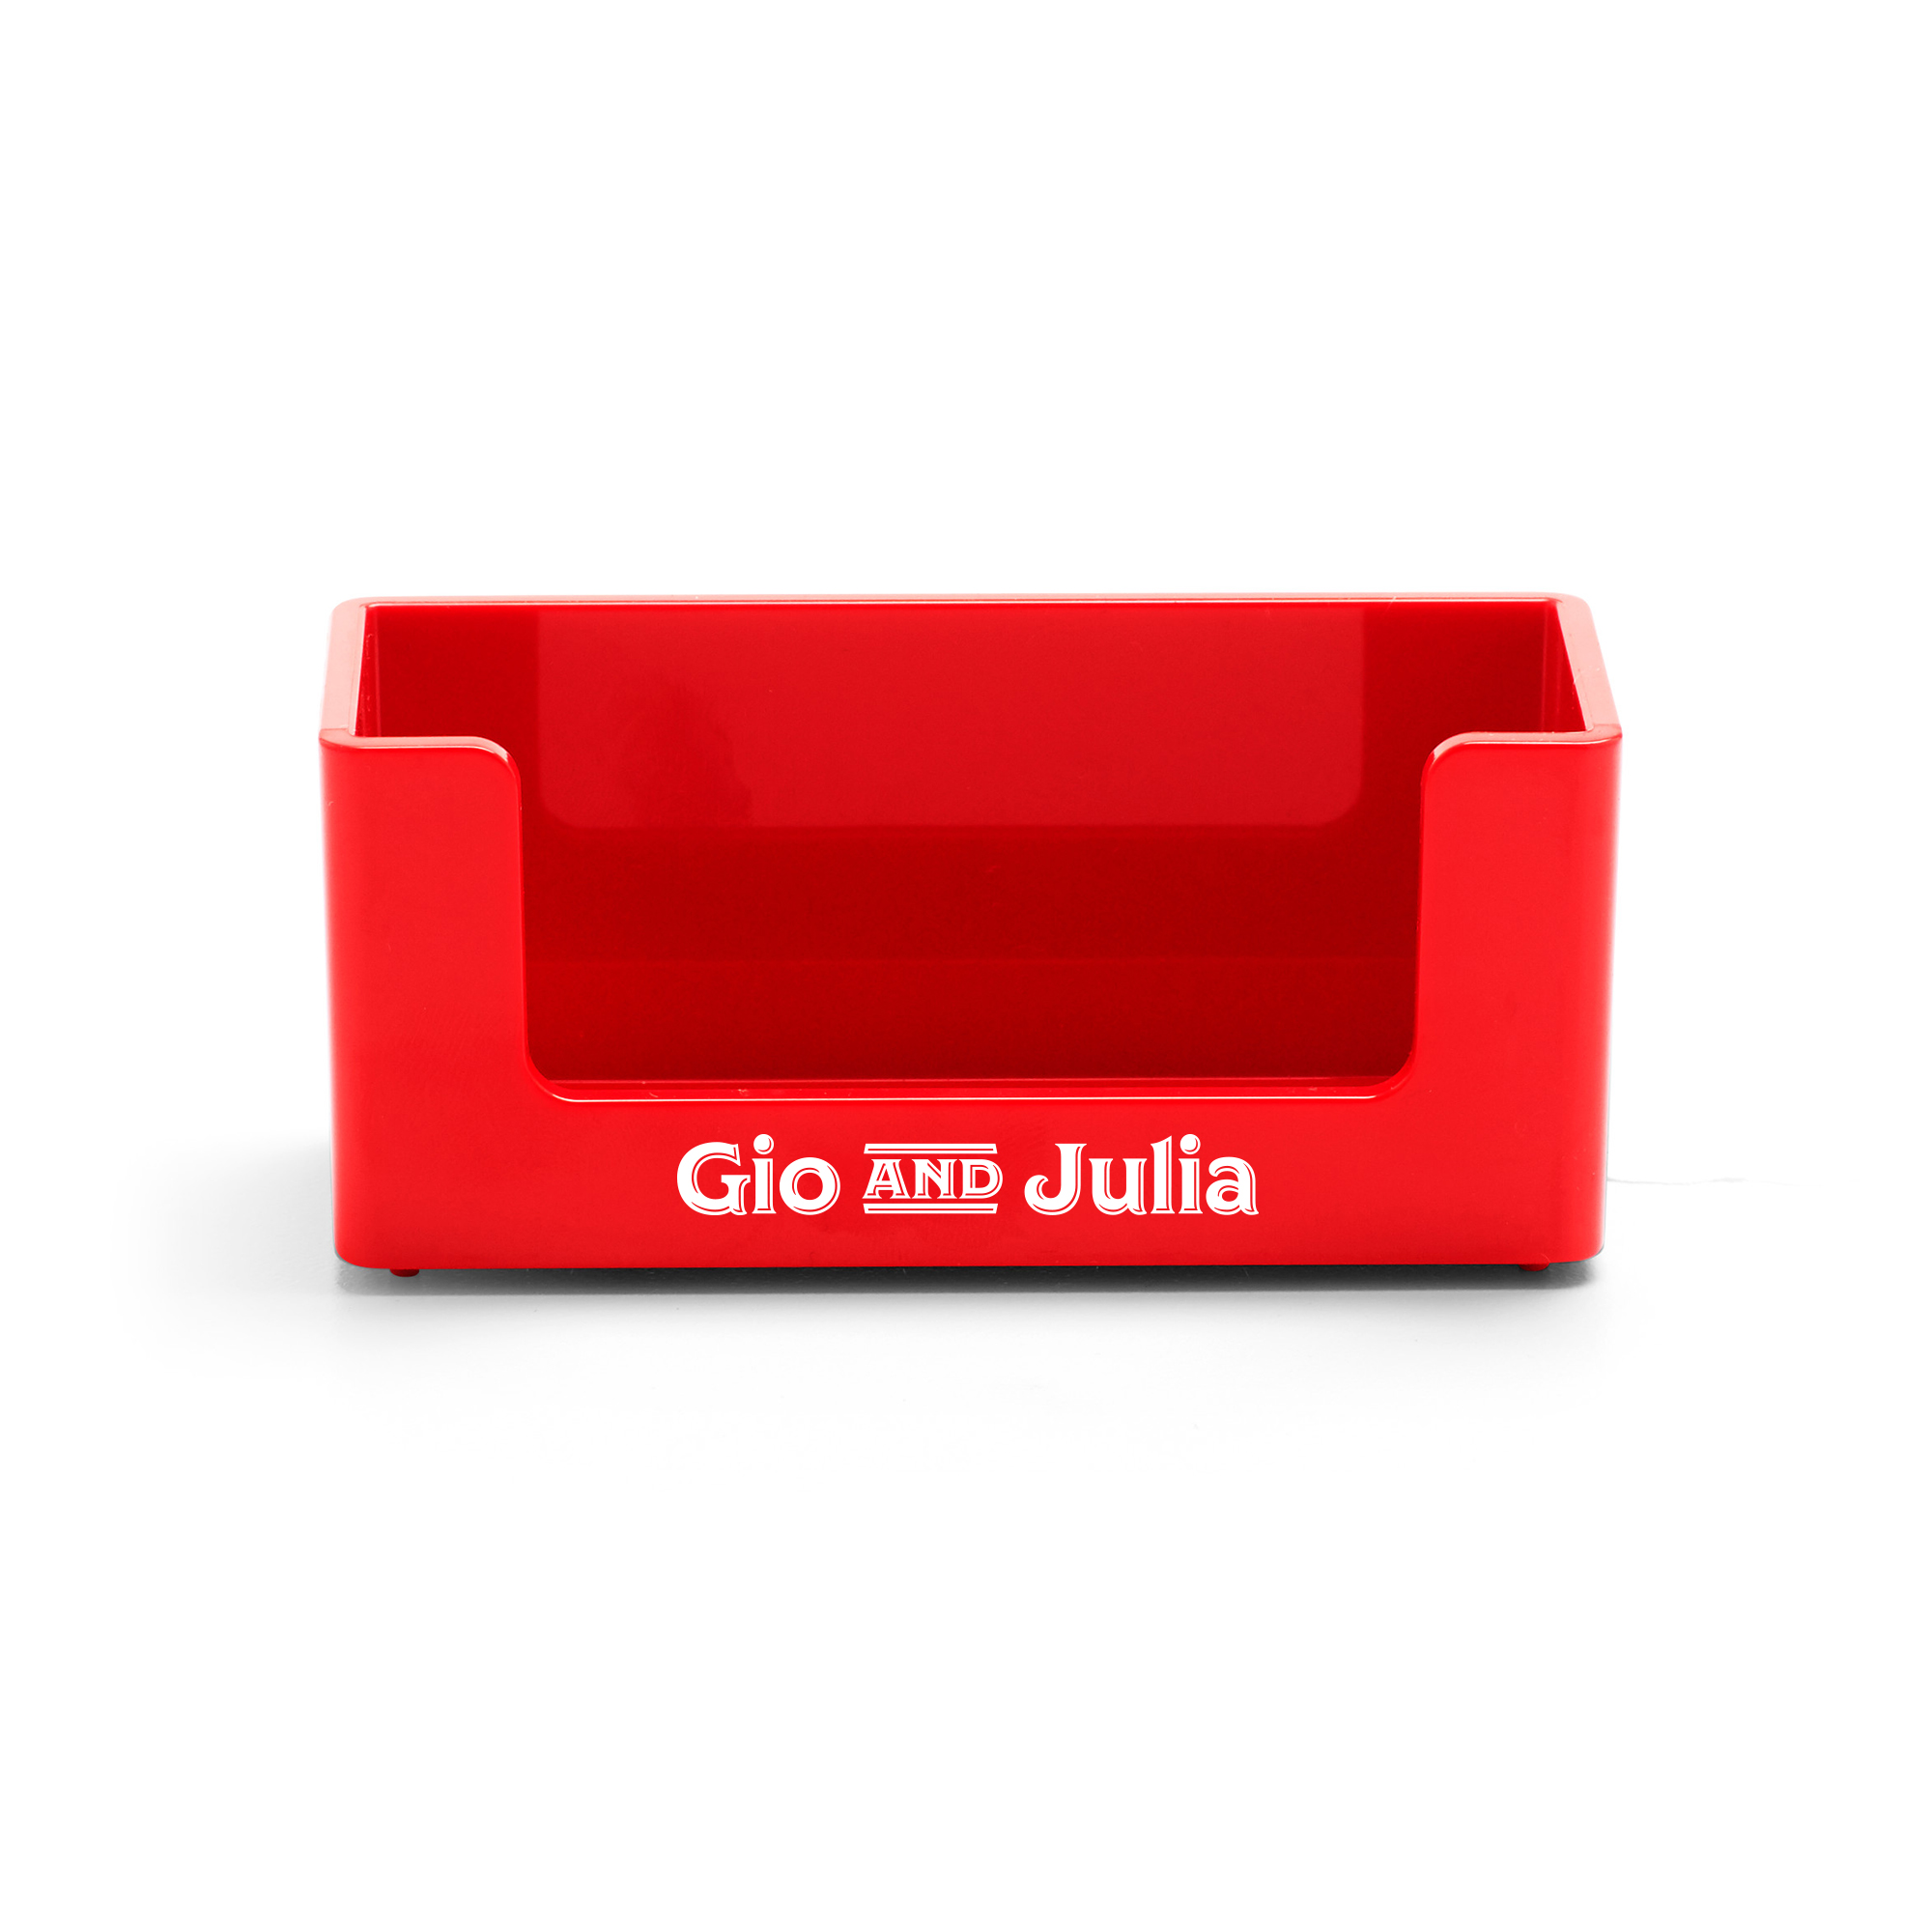 Custom red business card holder desk accessories poppin custom red business card holderredhi res loading zoom colourmoves